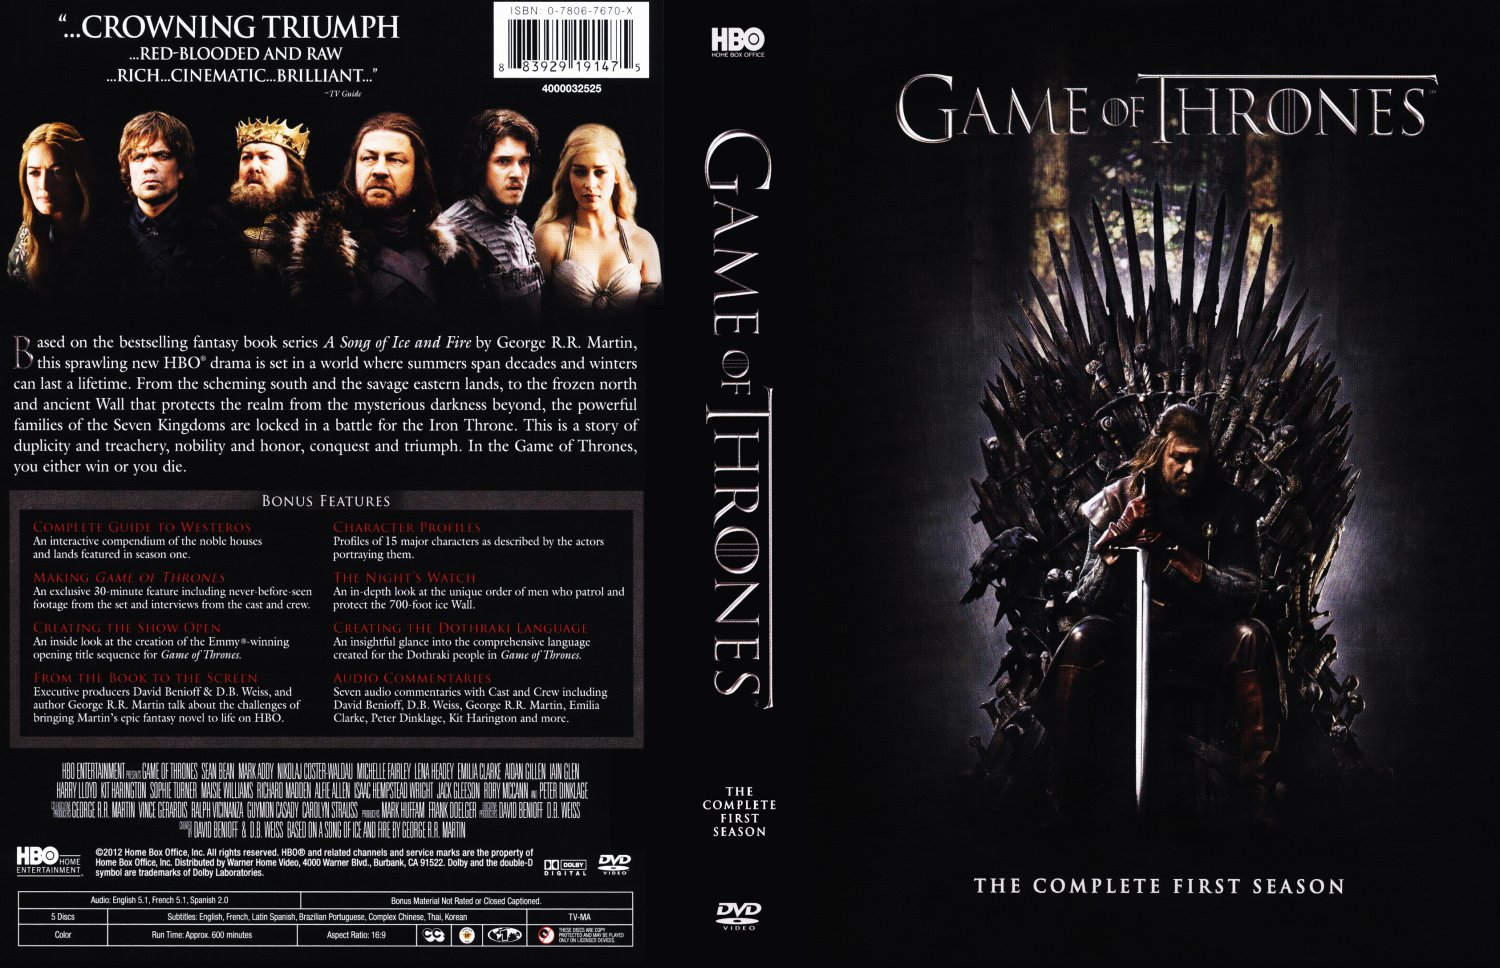 resumã saison 1 of throne of thrones saison 3 dvd thrones saison 3 dvd